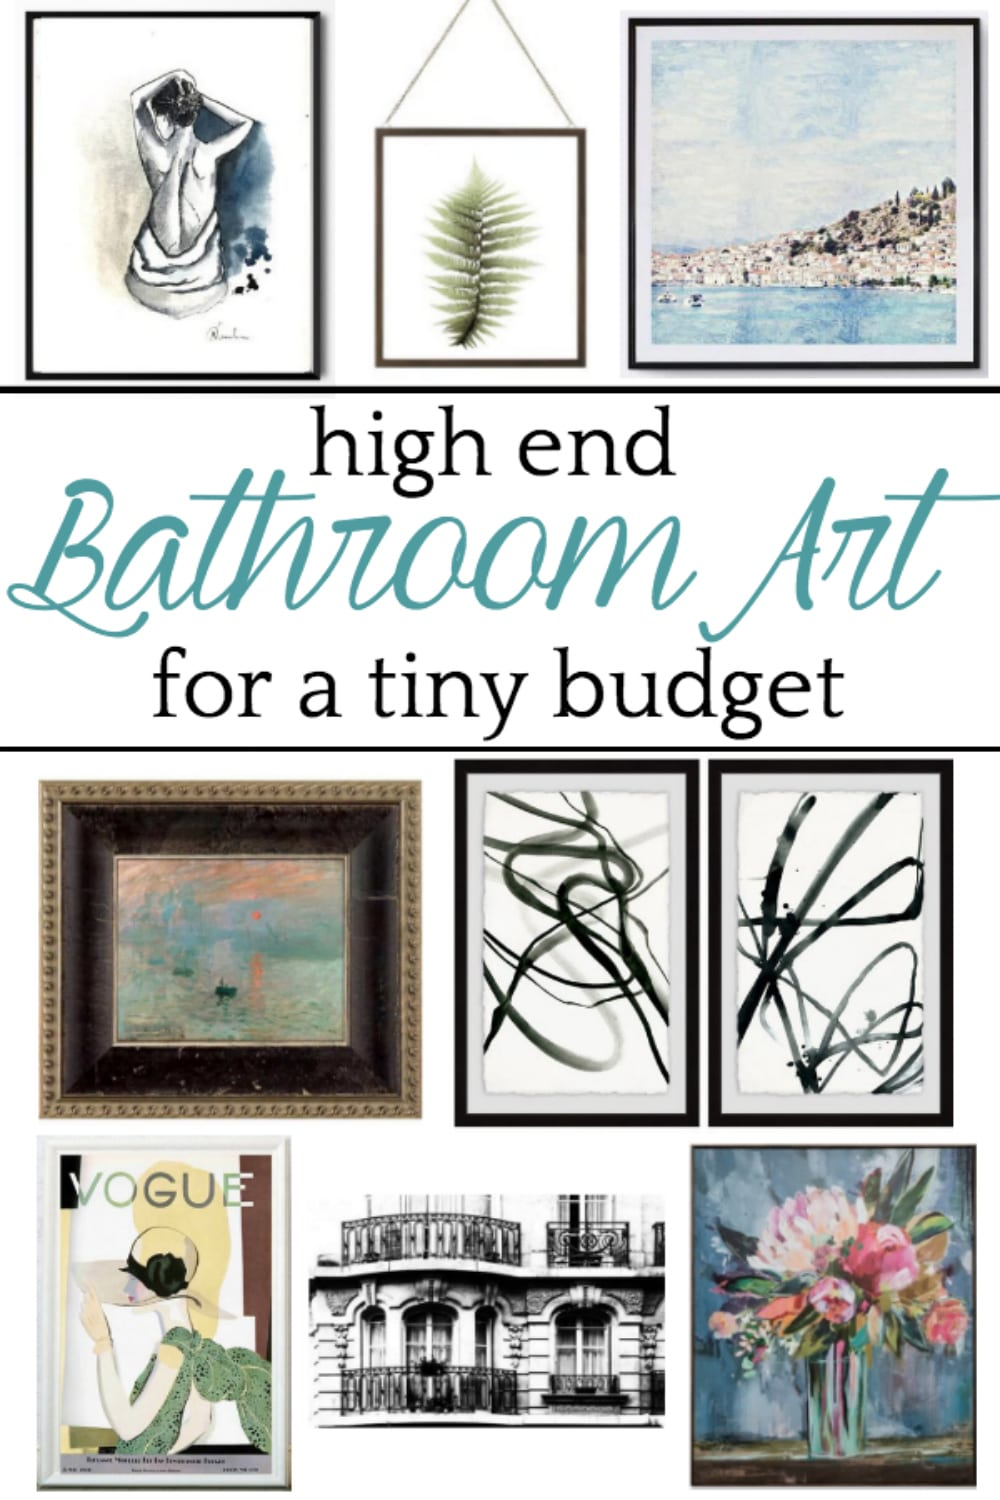 A shopping guide with upscale art for bathrooms for under $100 based on linear figures, architectural sketches, vintage advertisements, sky/water/landscapes, abstract paintings, and botanicals. #bathroomart